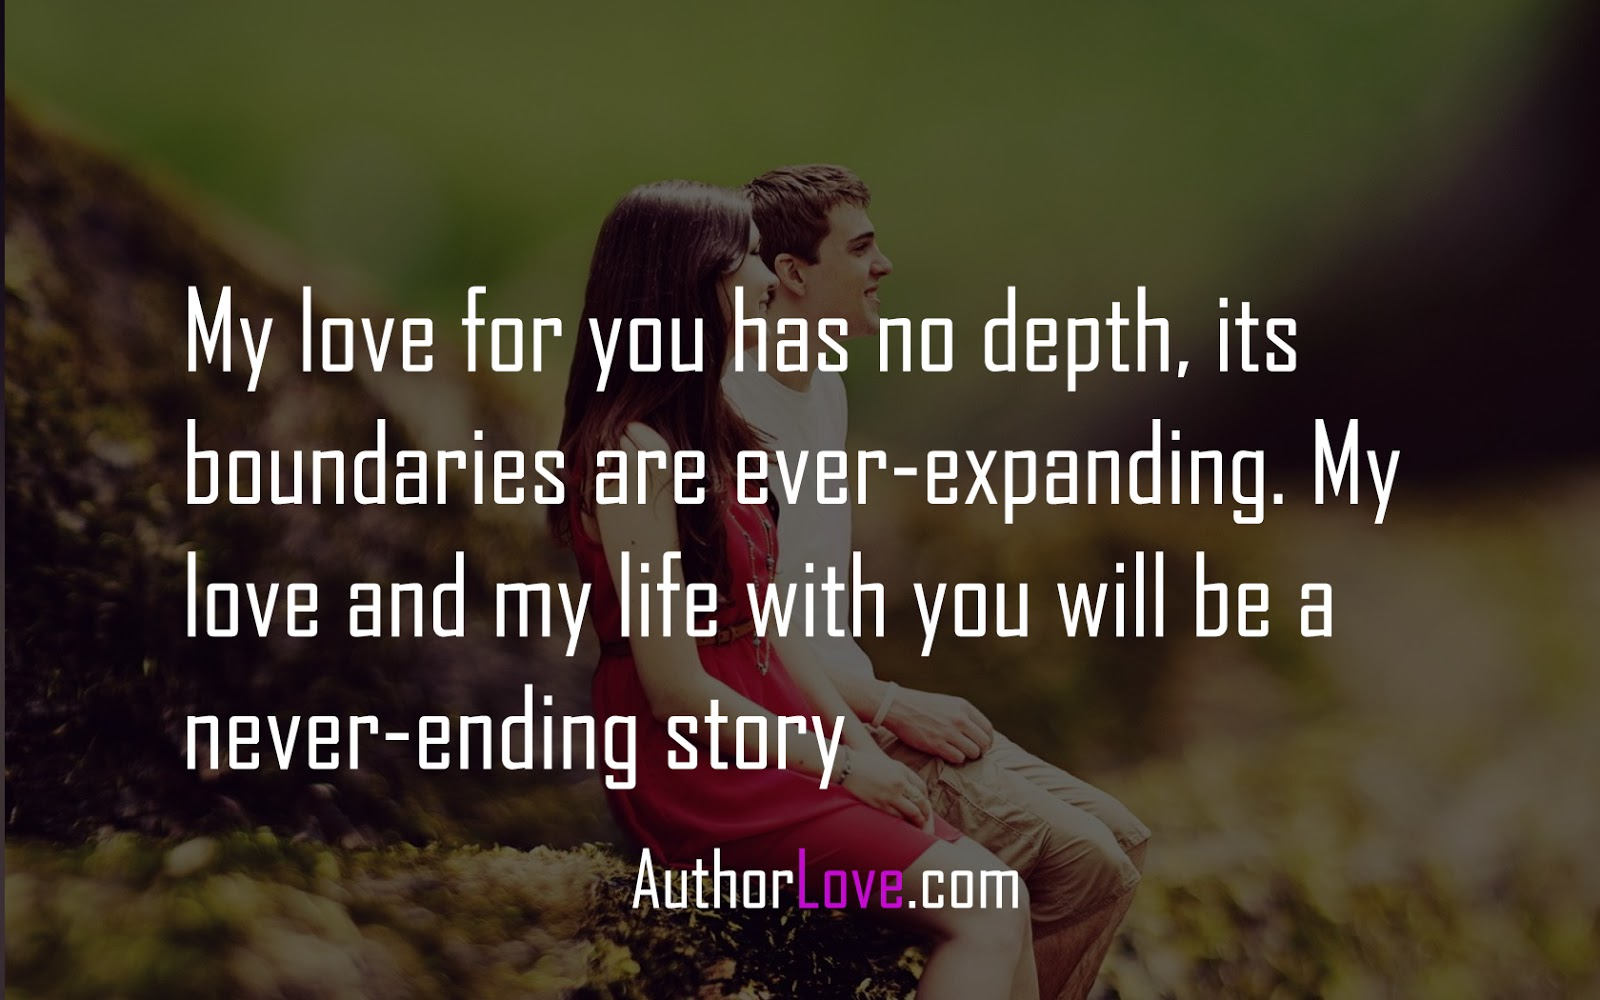 Love Of My Life Quotes For Her Magnificent My Love For You Has No Depth Its Boundaries Are Everexpanding